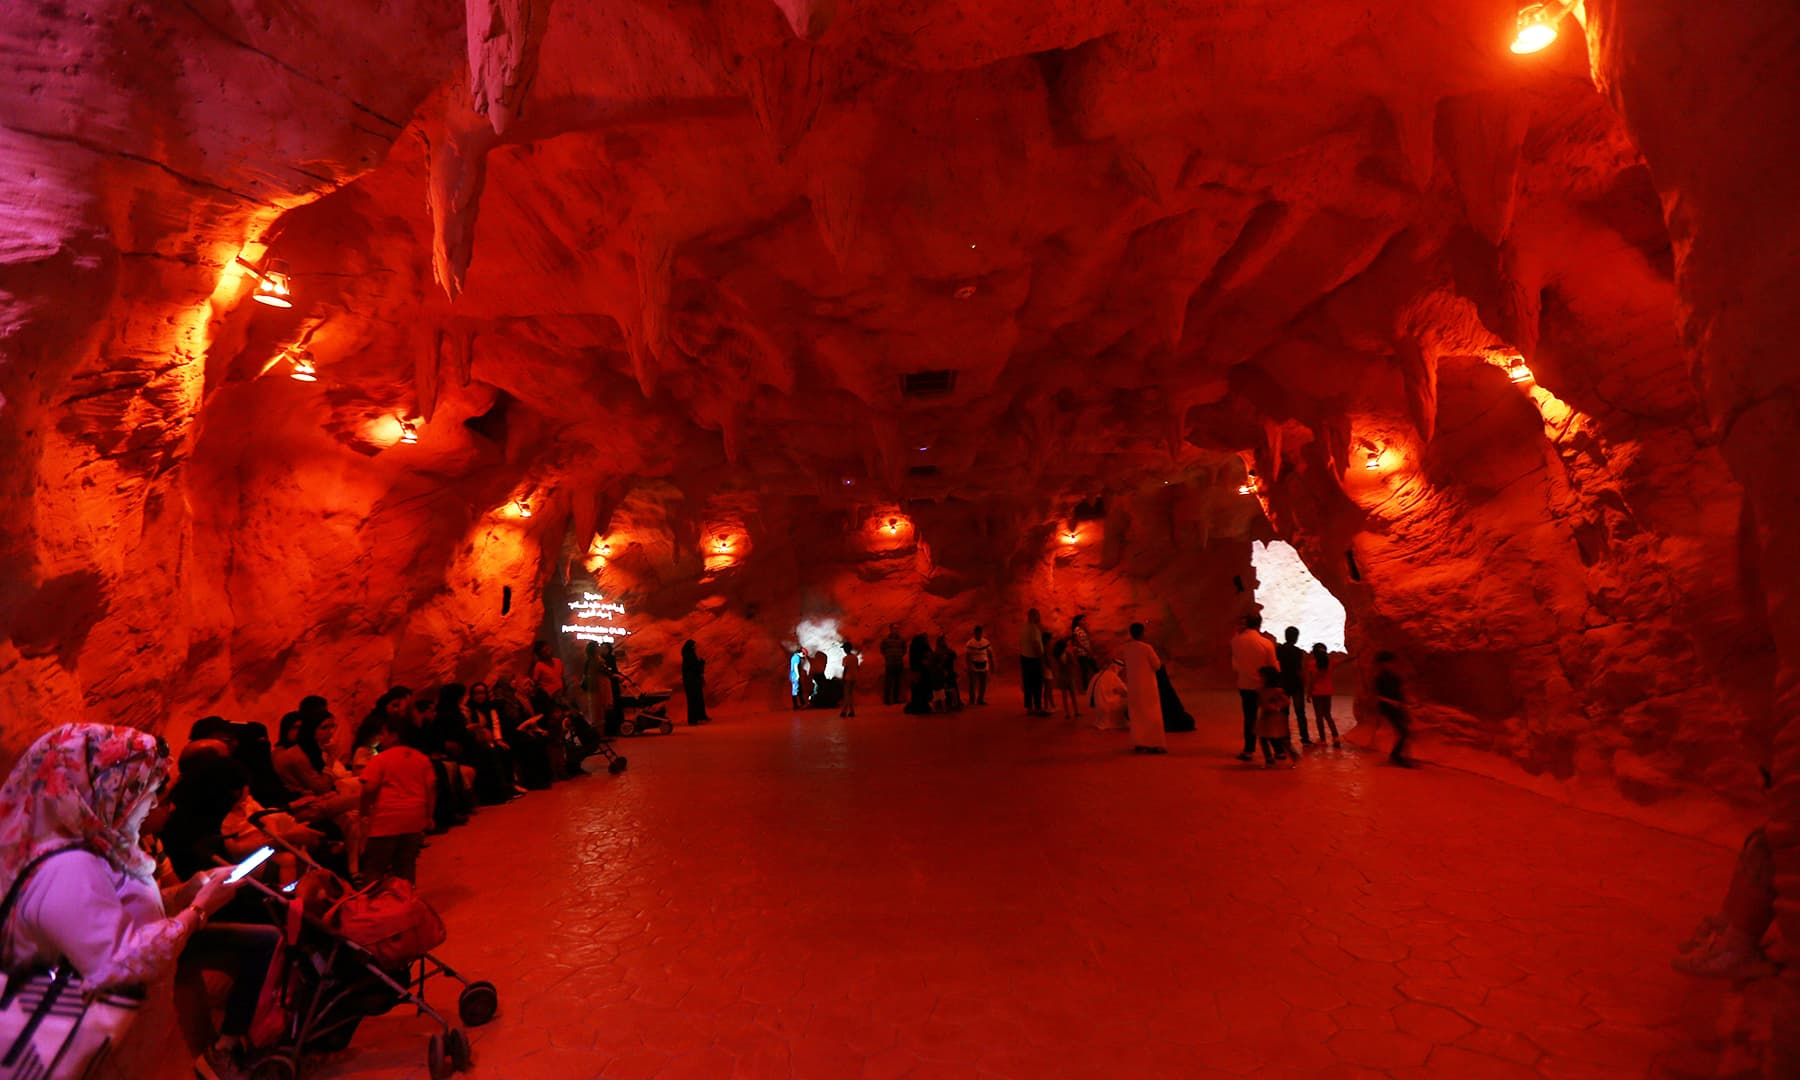 More visitors are pictured taking a tour of the Cave of Miracles. — Reuters